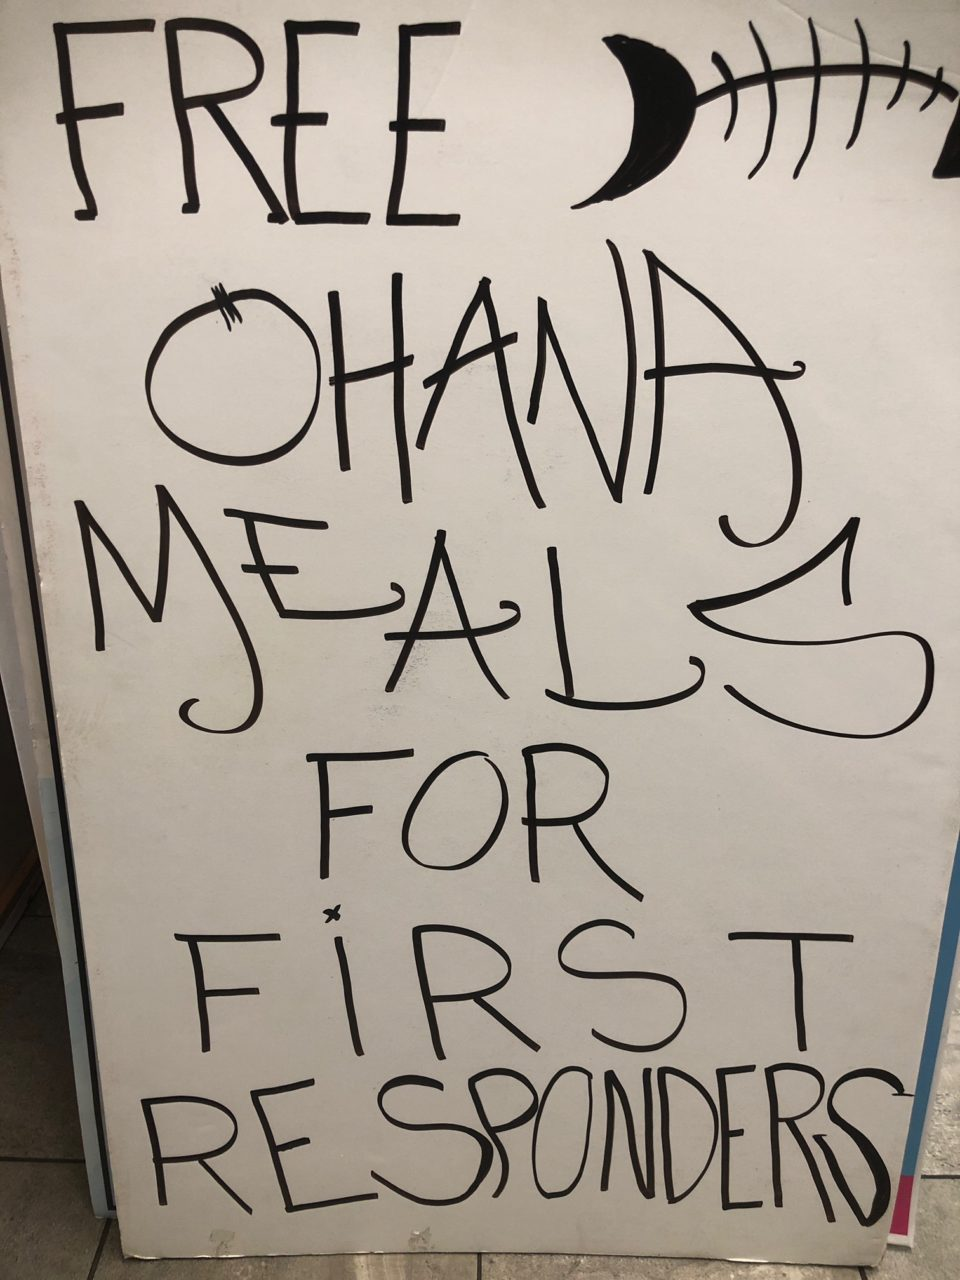 Down The Hatch Maui  Free meals for first responders sign